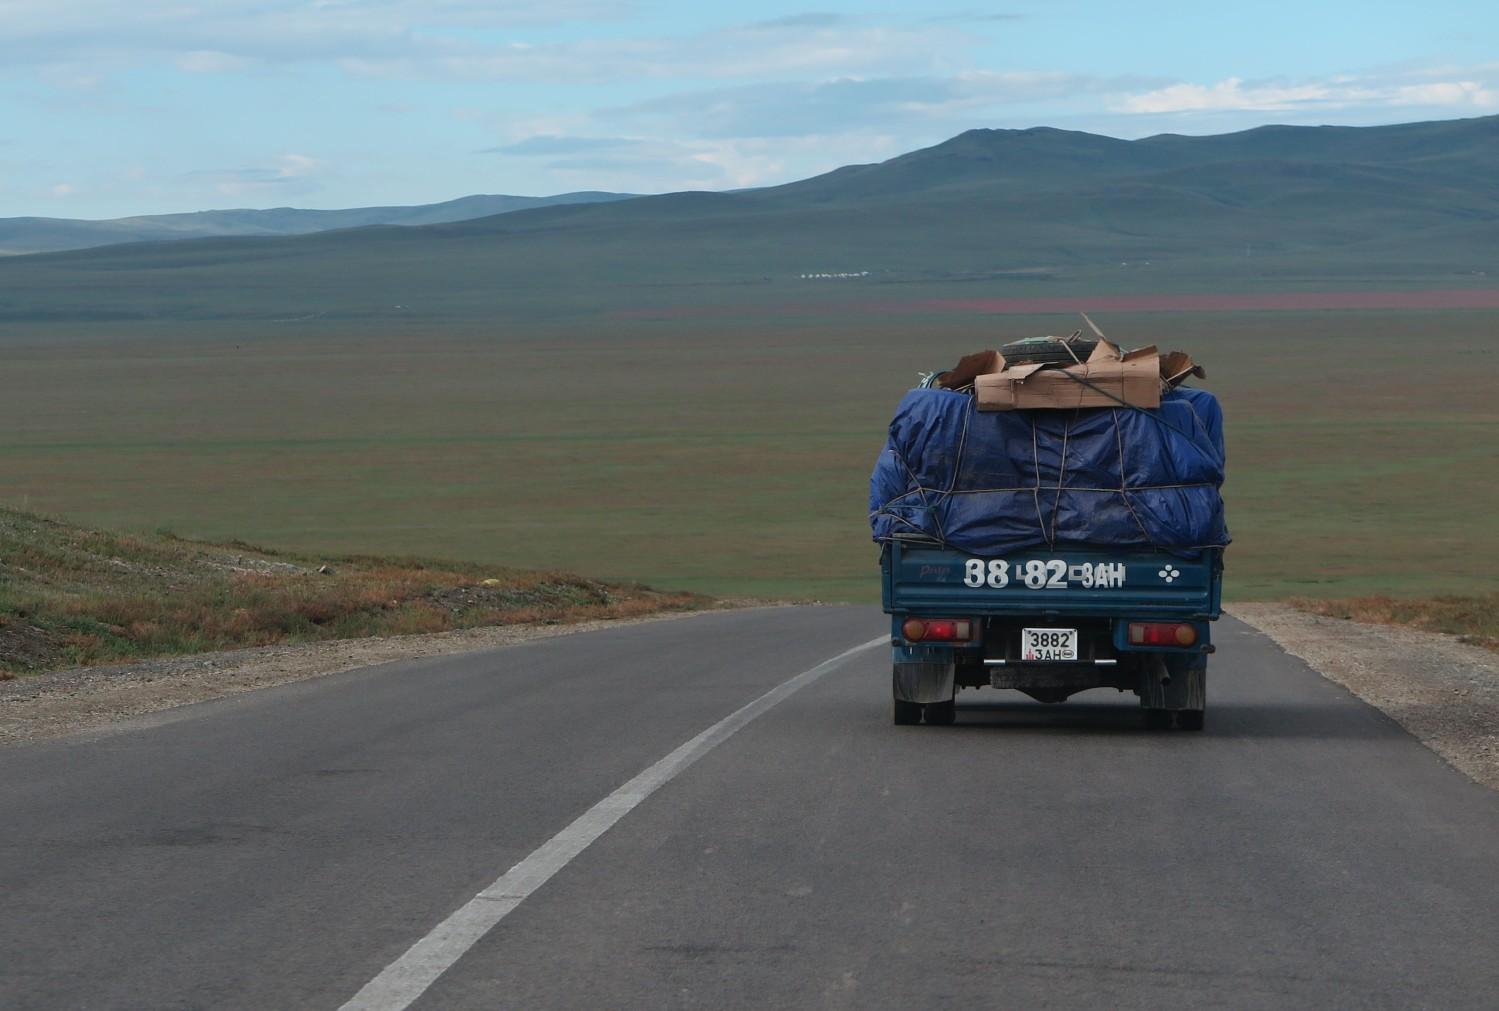 Mongolia-On-The-Road-Truck